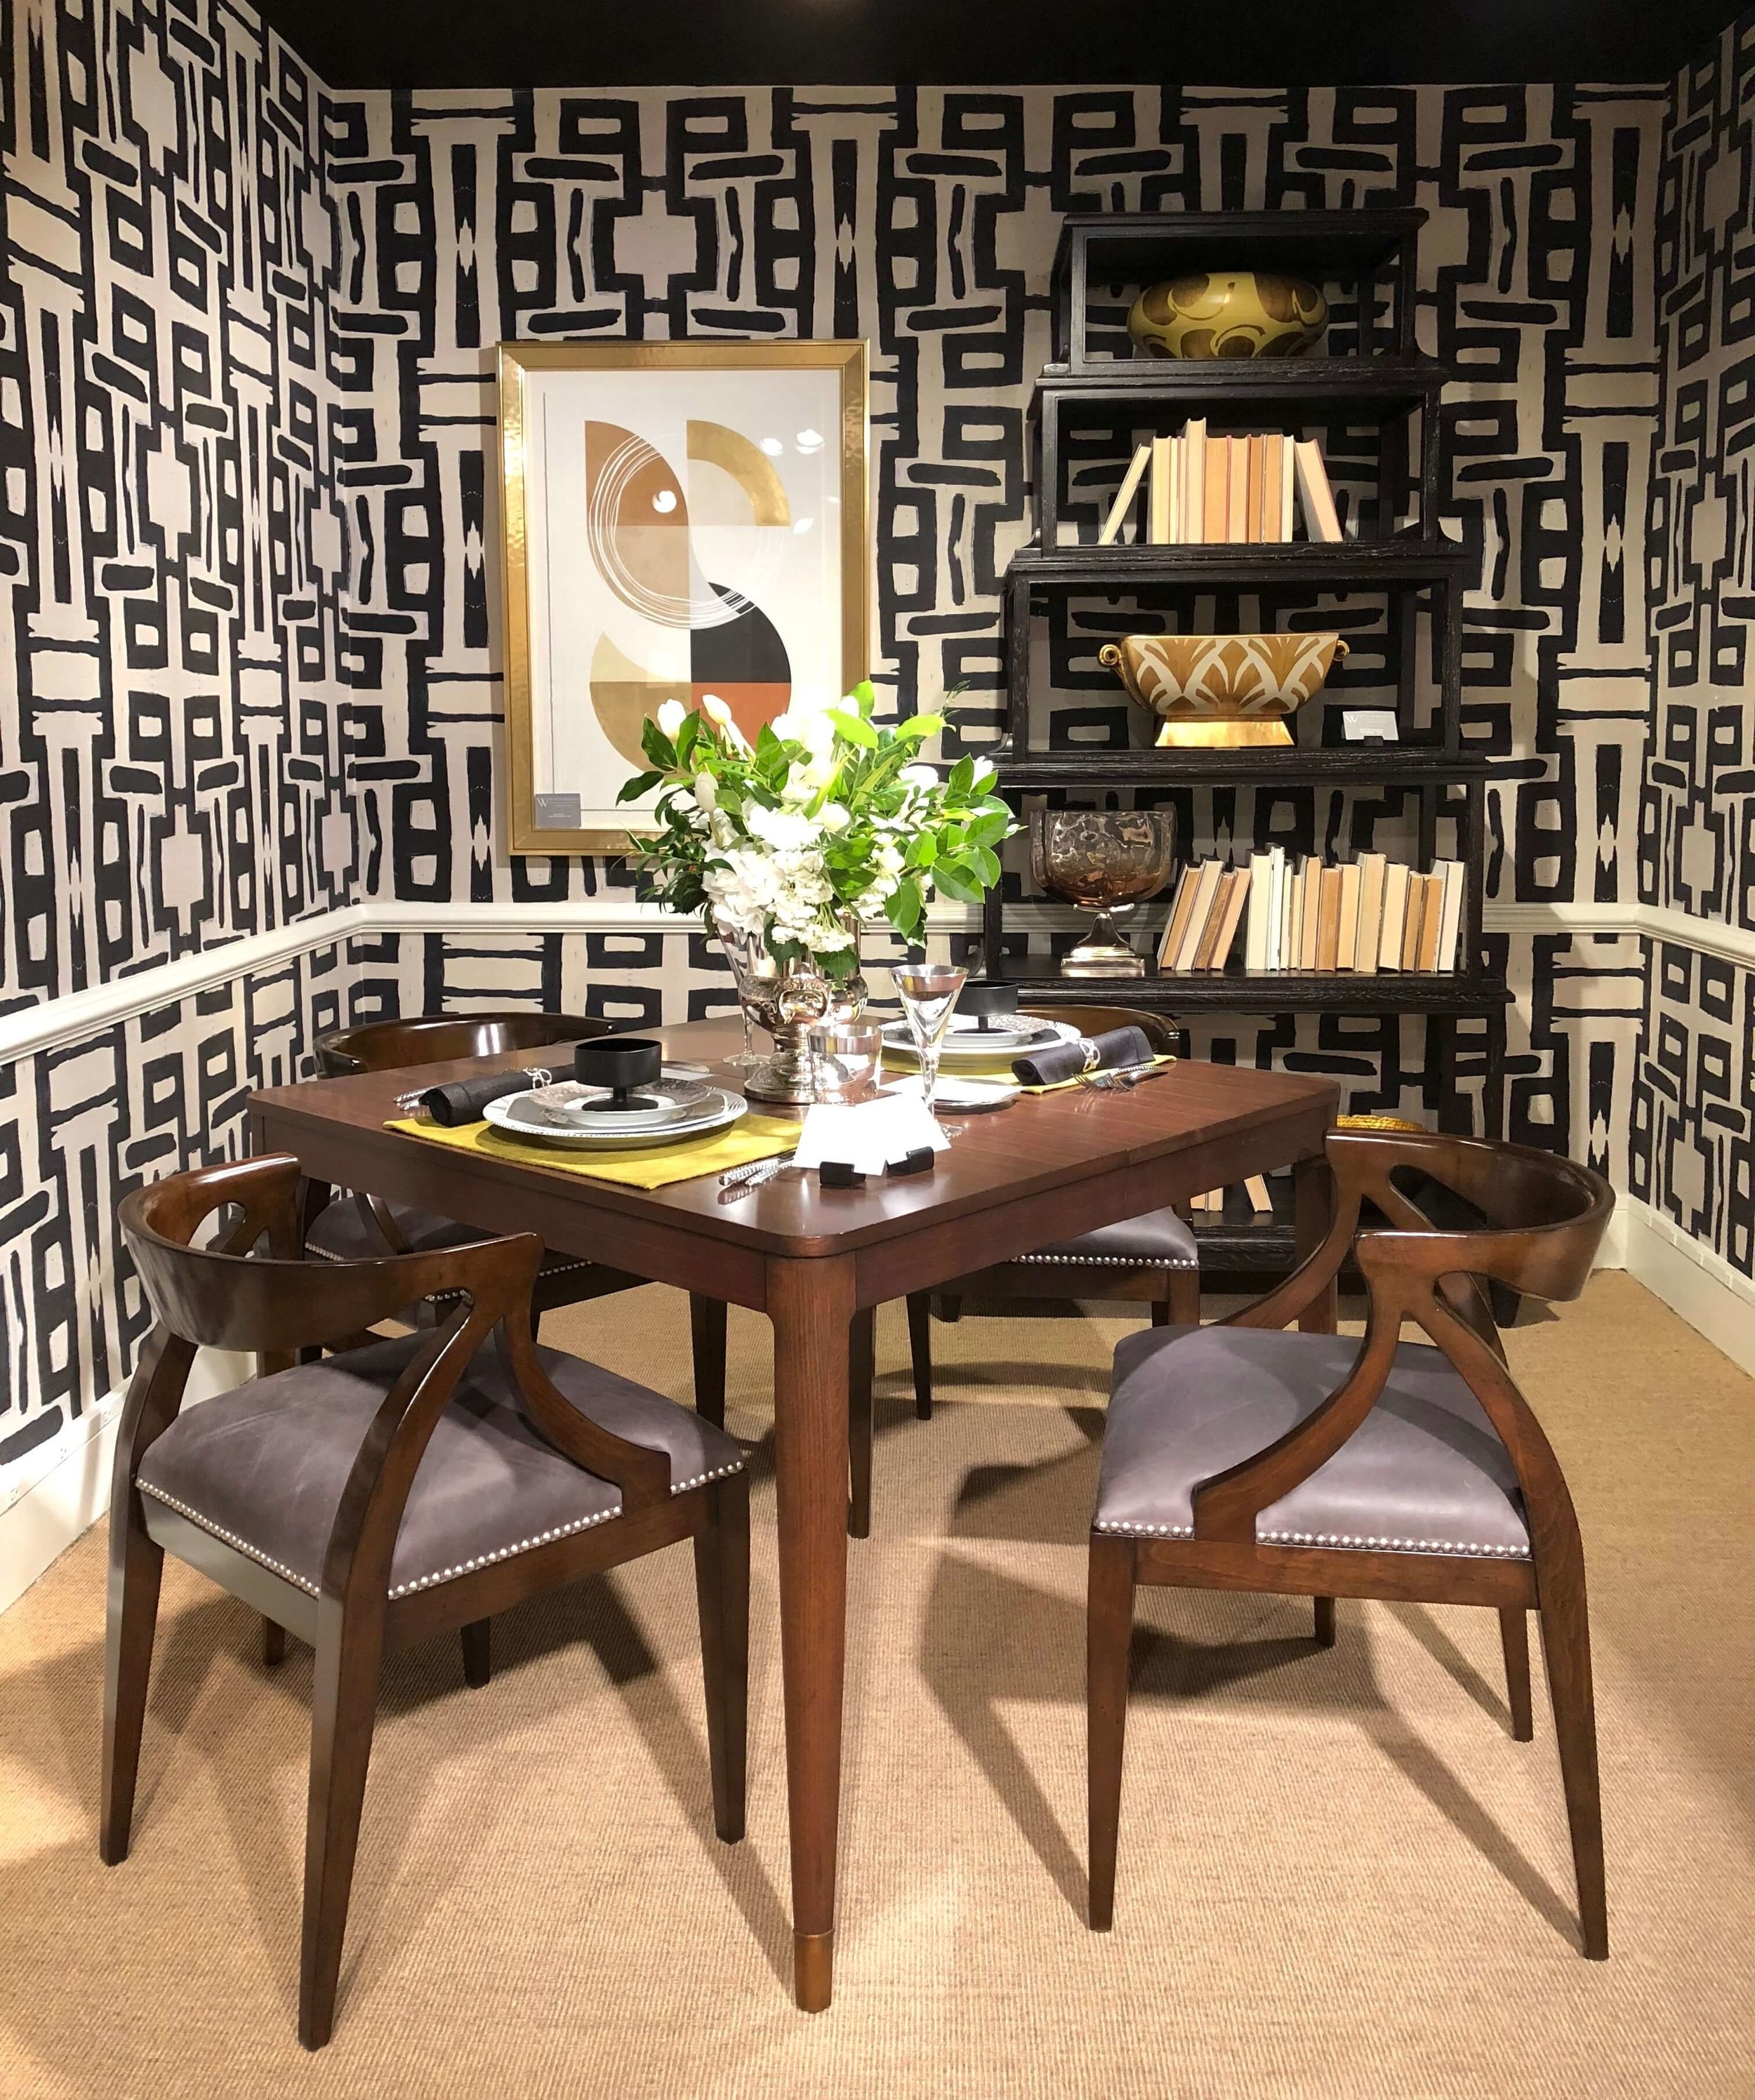 This brown wood table and chairs look modern and up to date with the large scale patterned wallcovering enveloping it. Seen at Woodbridge Furniture.